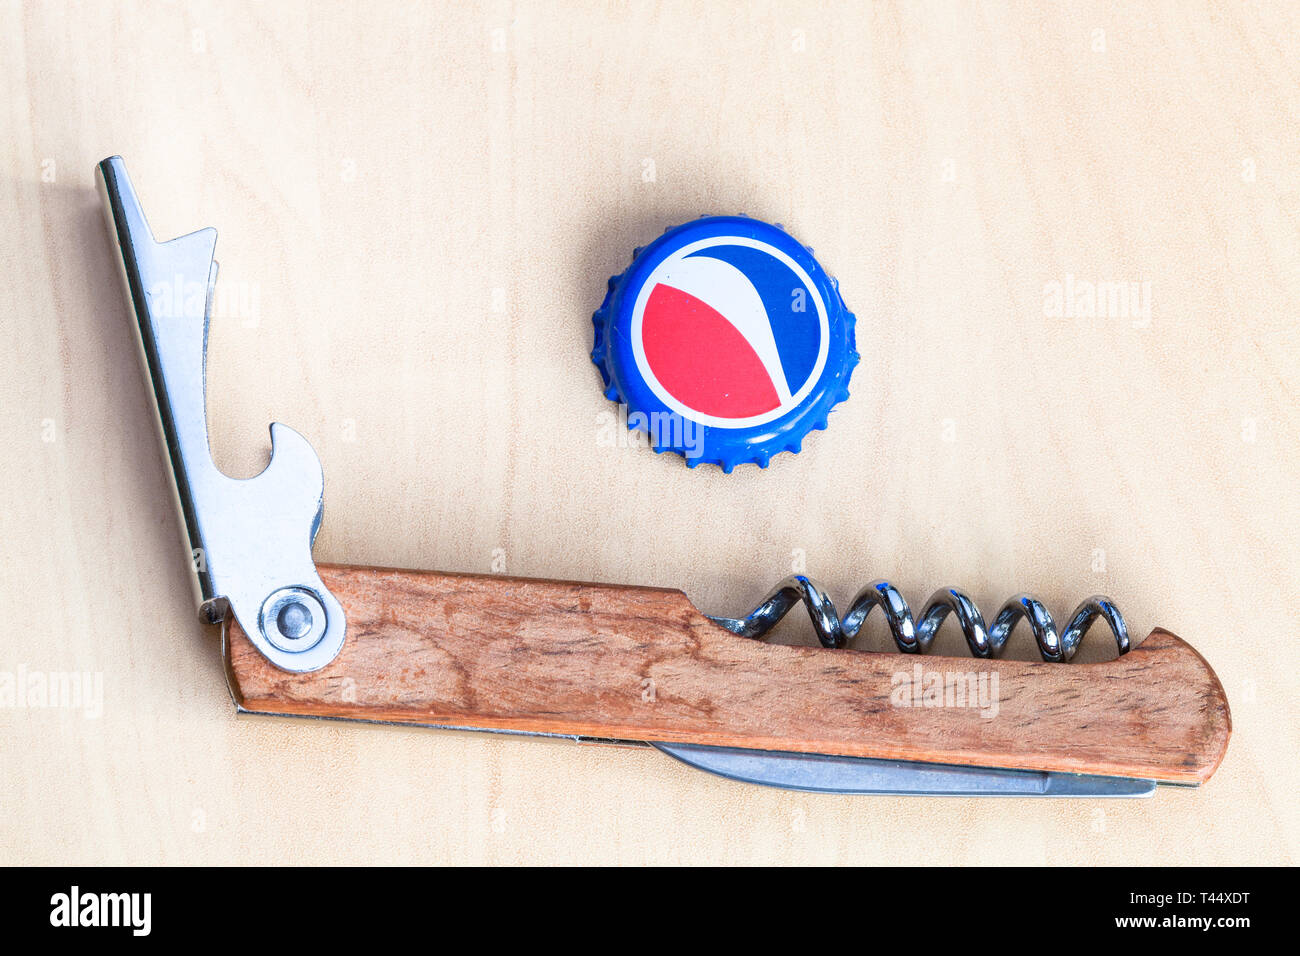 MOSCOW, RUSSIA - APRIL 4, 2019: used crown cork bottle cap from Pepsi beverage and bottle opener on wooden board. Pepsi is carbonated soft drink manuf - Stock Image